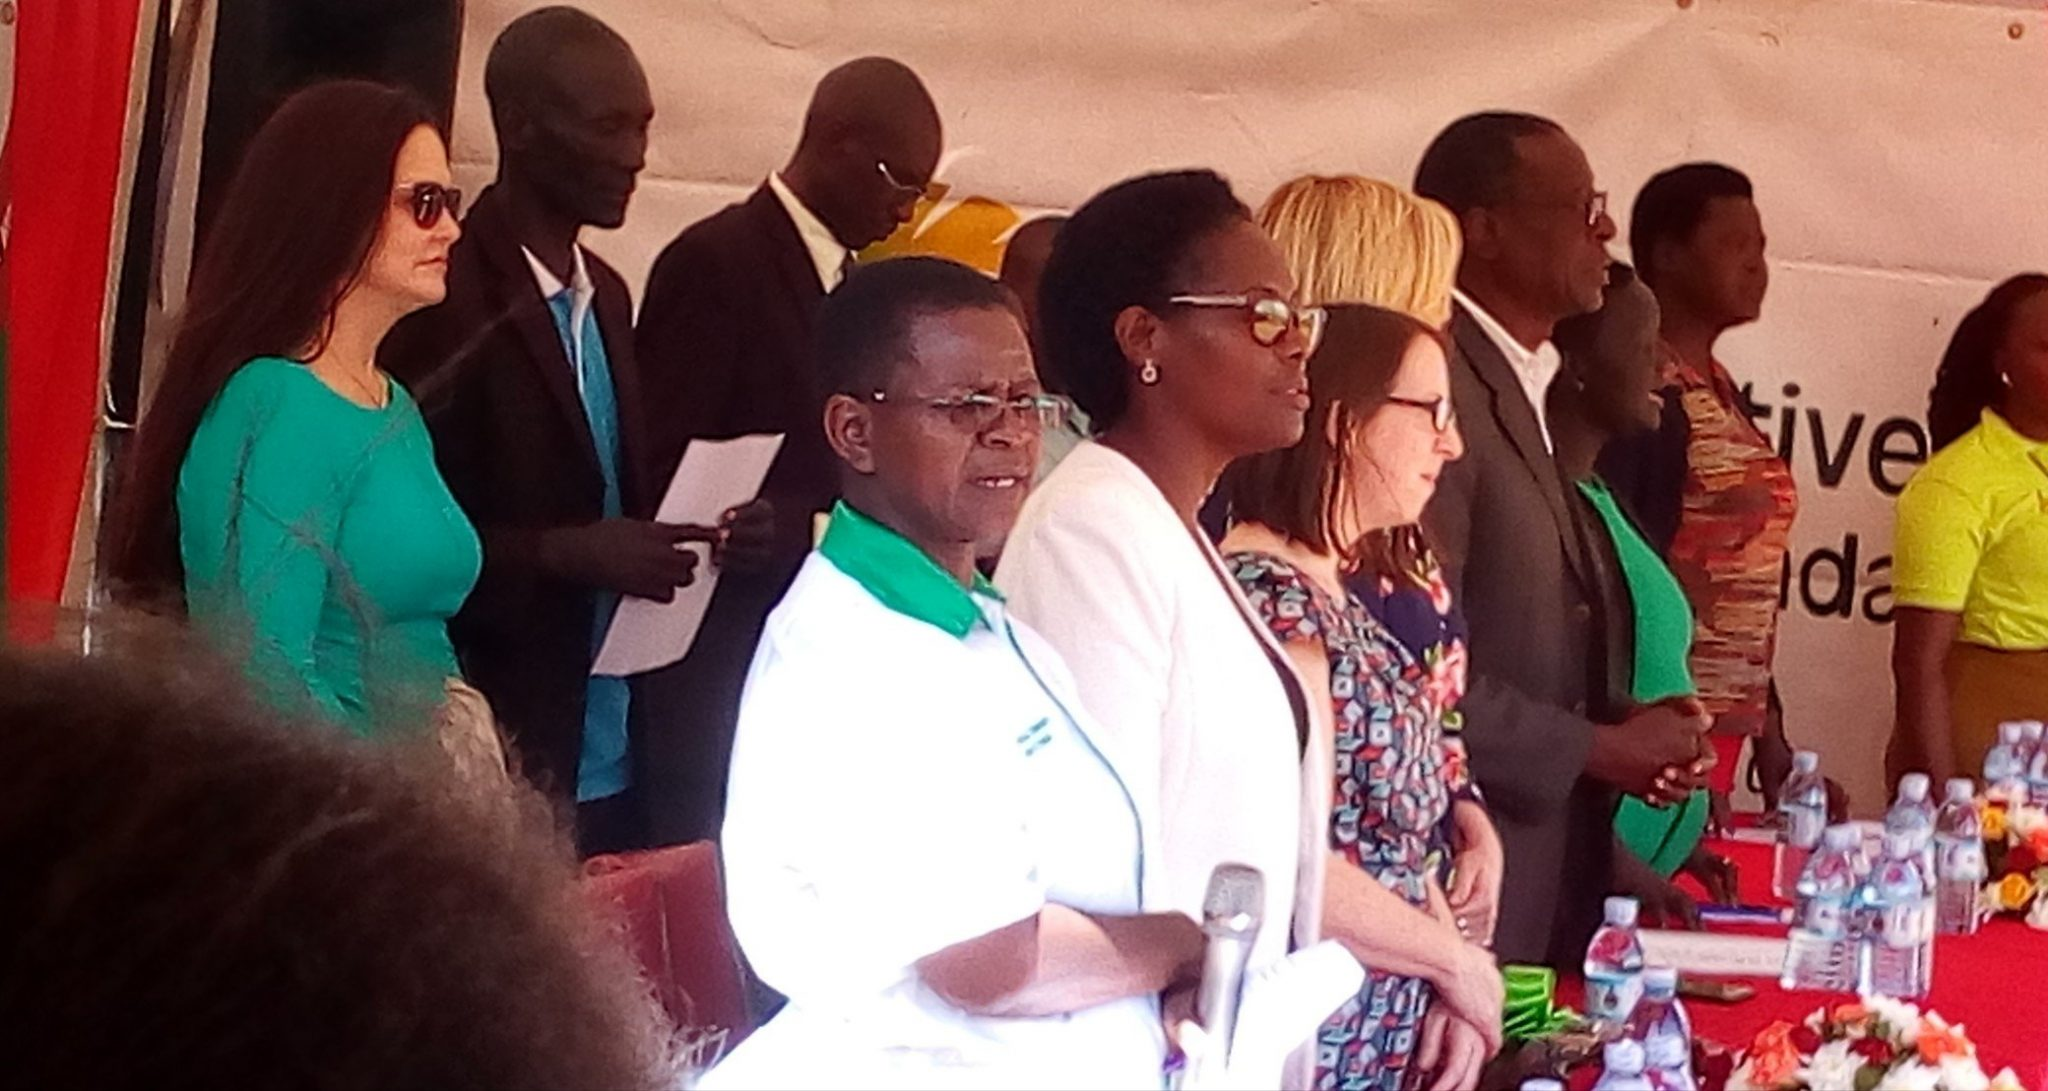 Stella Kentusi, executive director of NAFOPHANU (first from left in white t-shirt) at the launch of the report flanked by other dignitaries. (UhspaUganda photo)